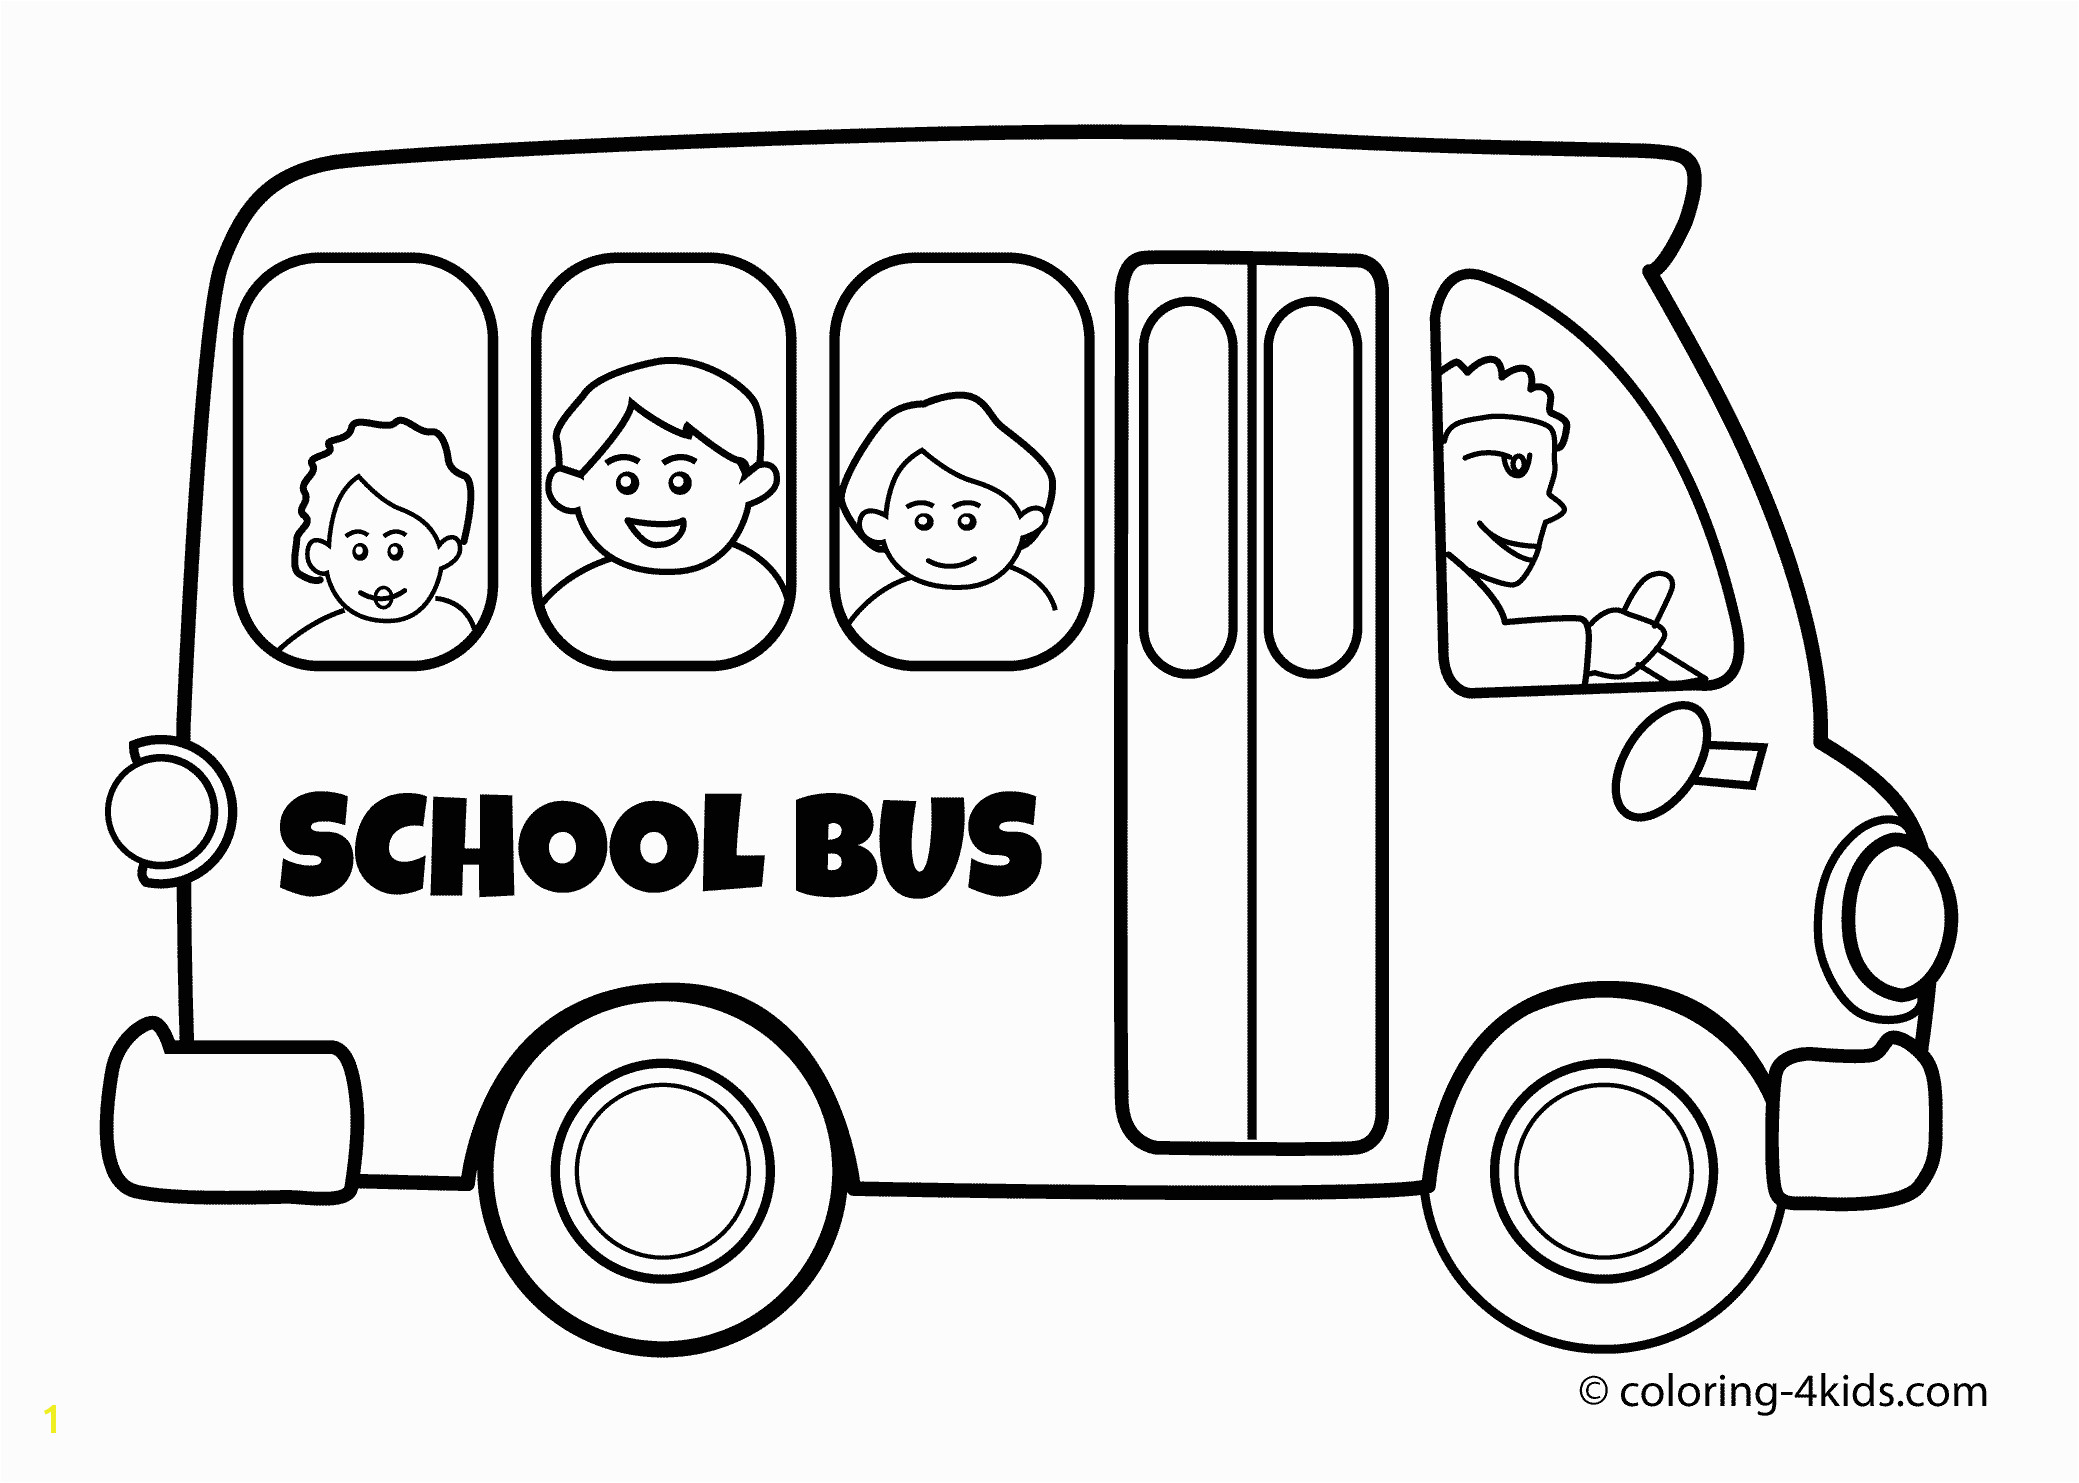 School Bus Coloring Pages To Print Free Books Best Page